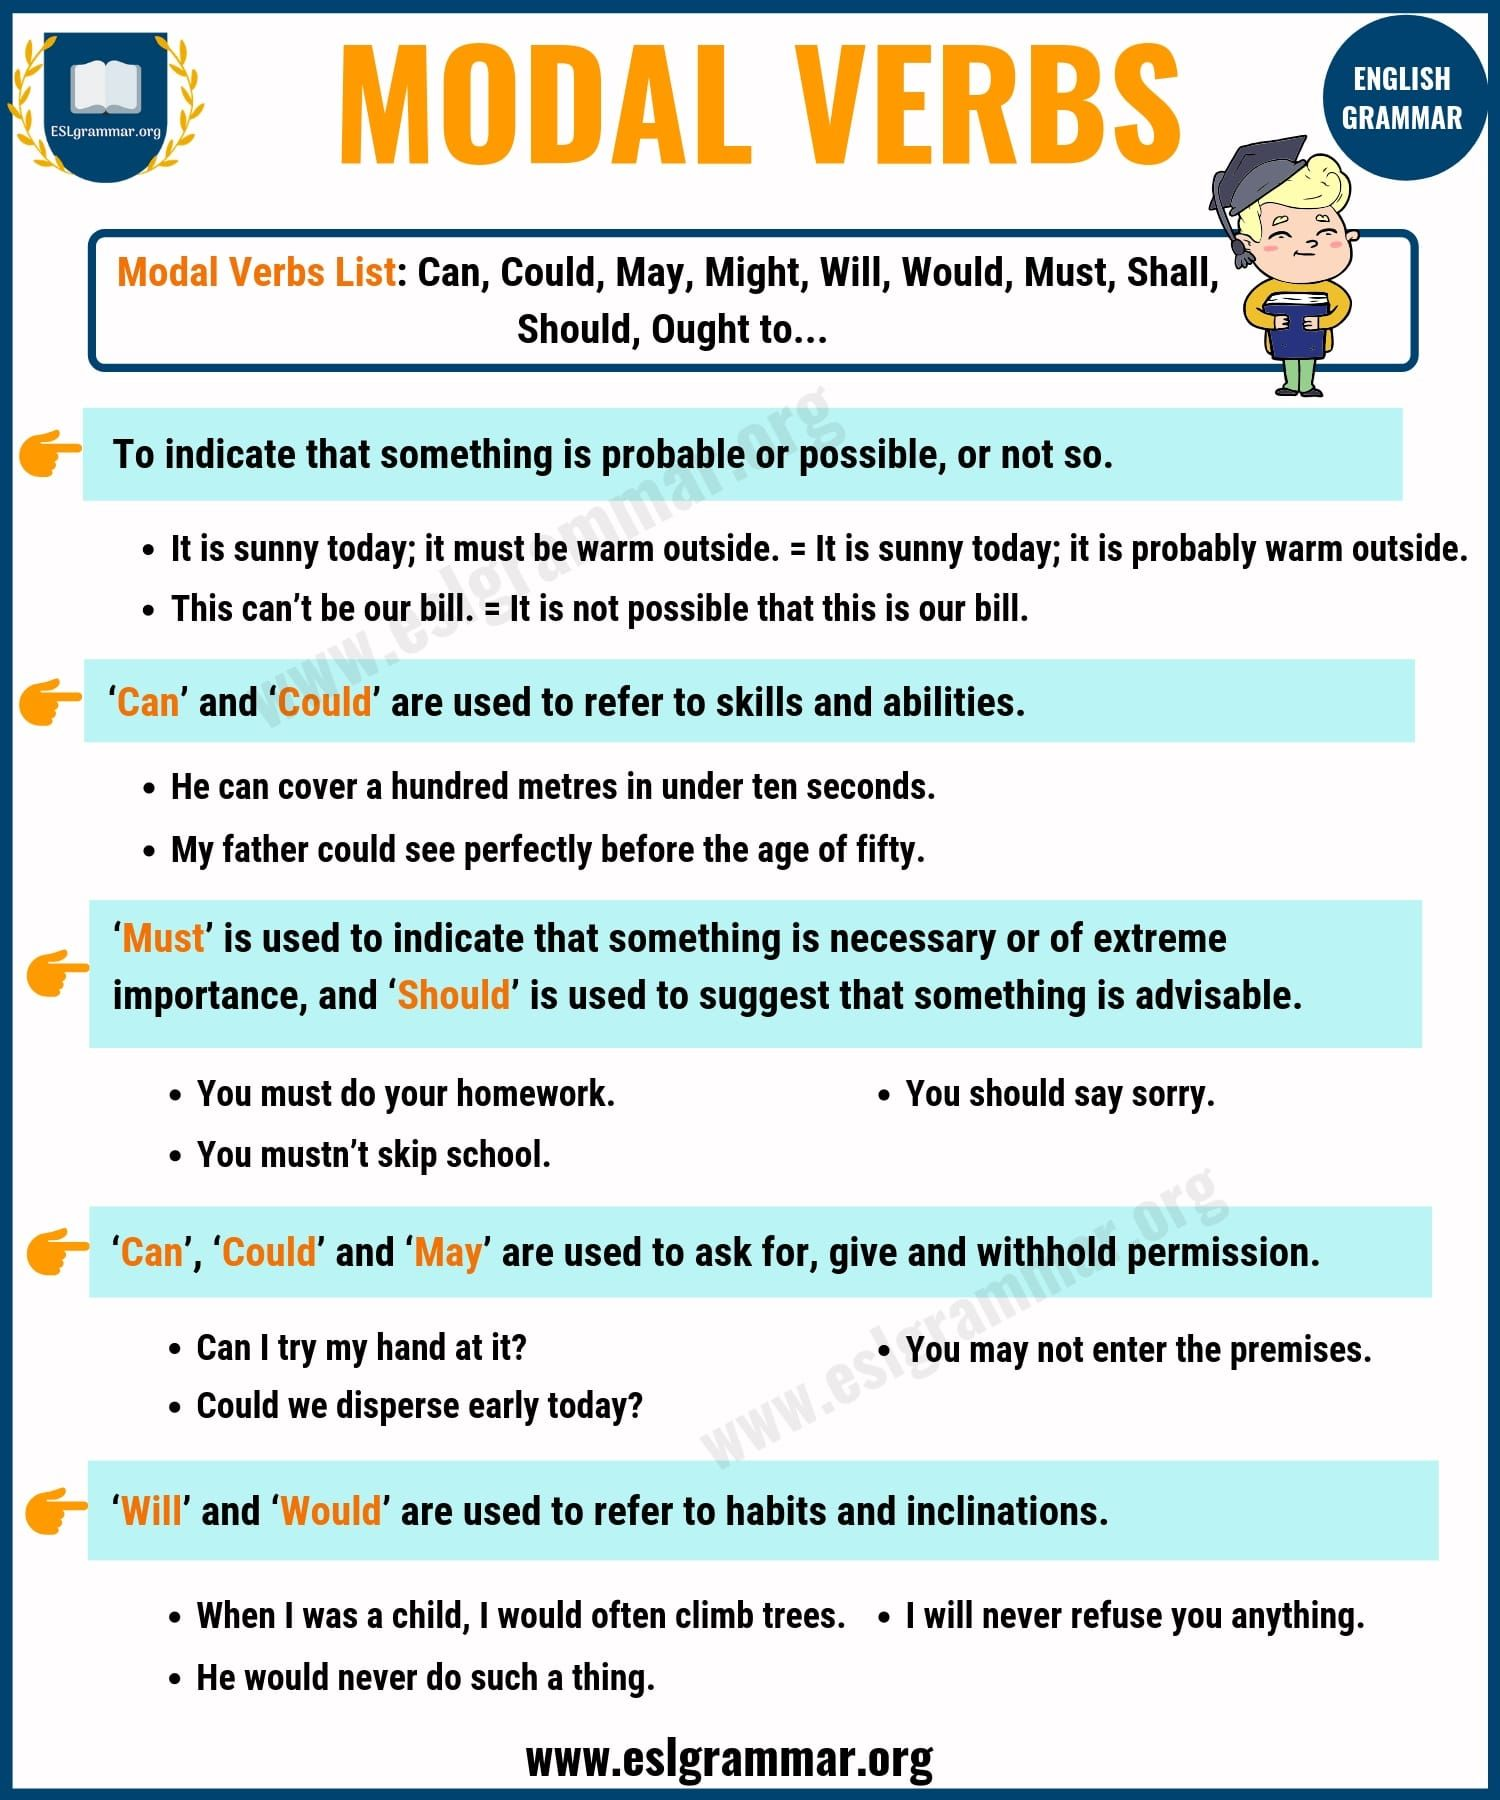 Modal Verbs Useful Rules List And Examples In English